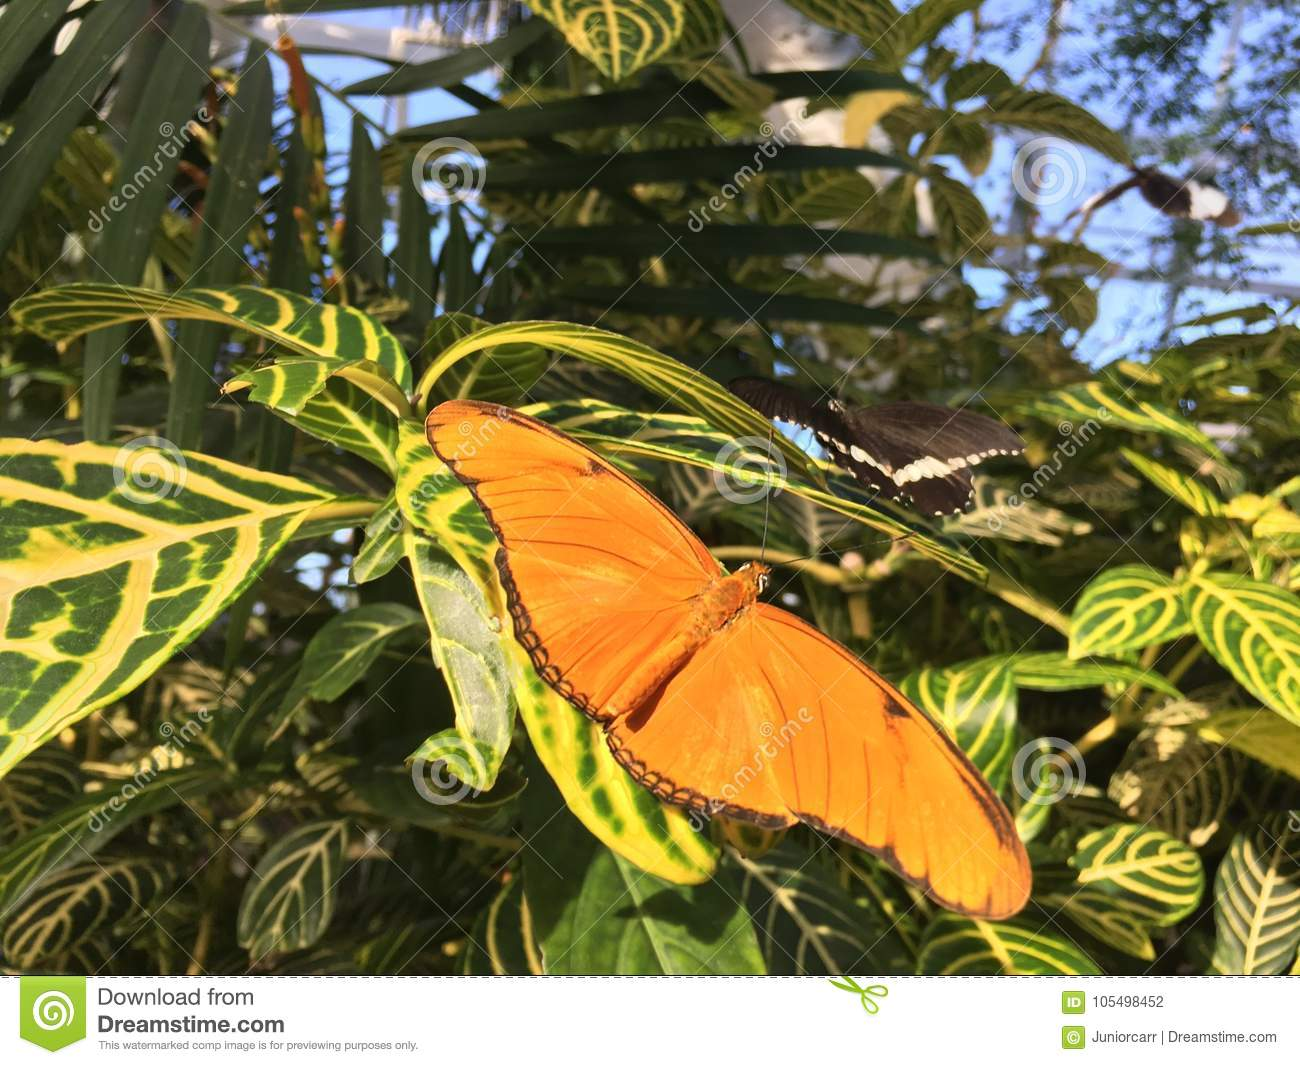 Dryas Julia Butterfly on green leaves